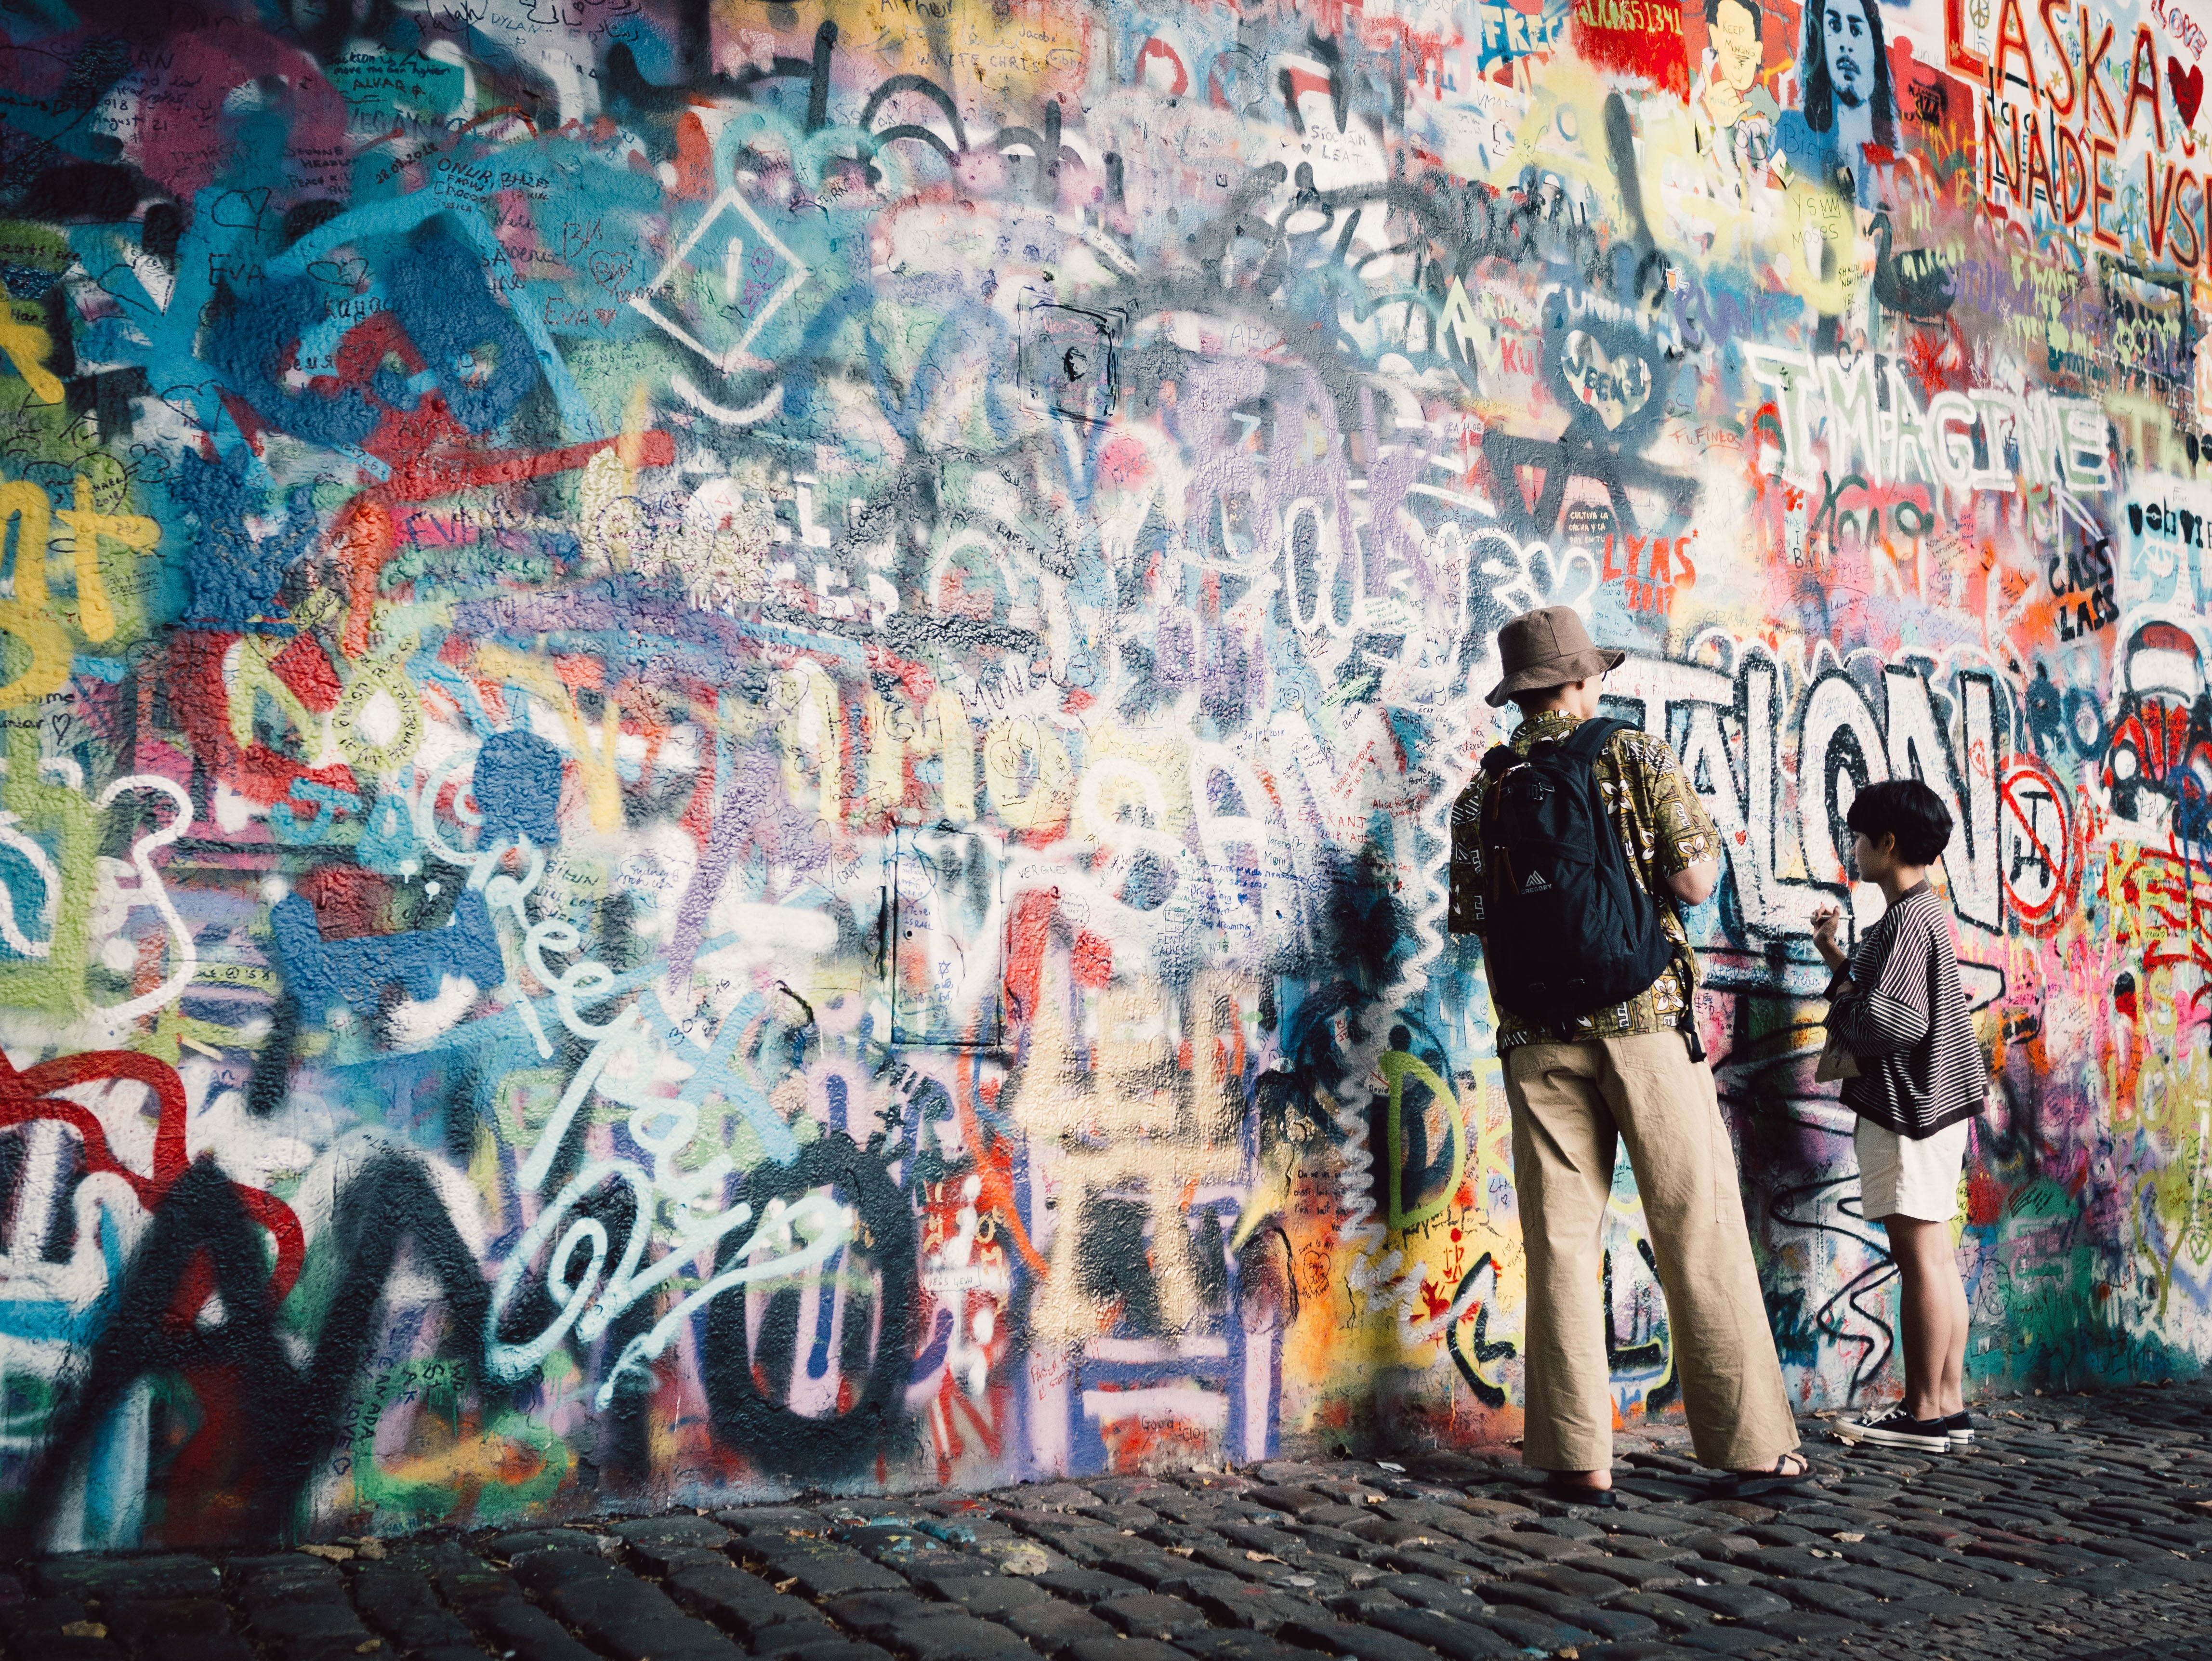 Man and Boy Painting the Wall